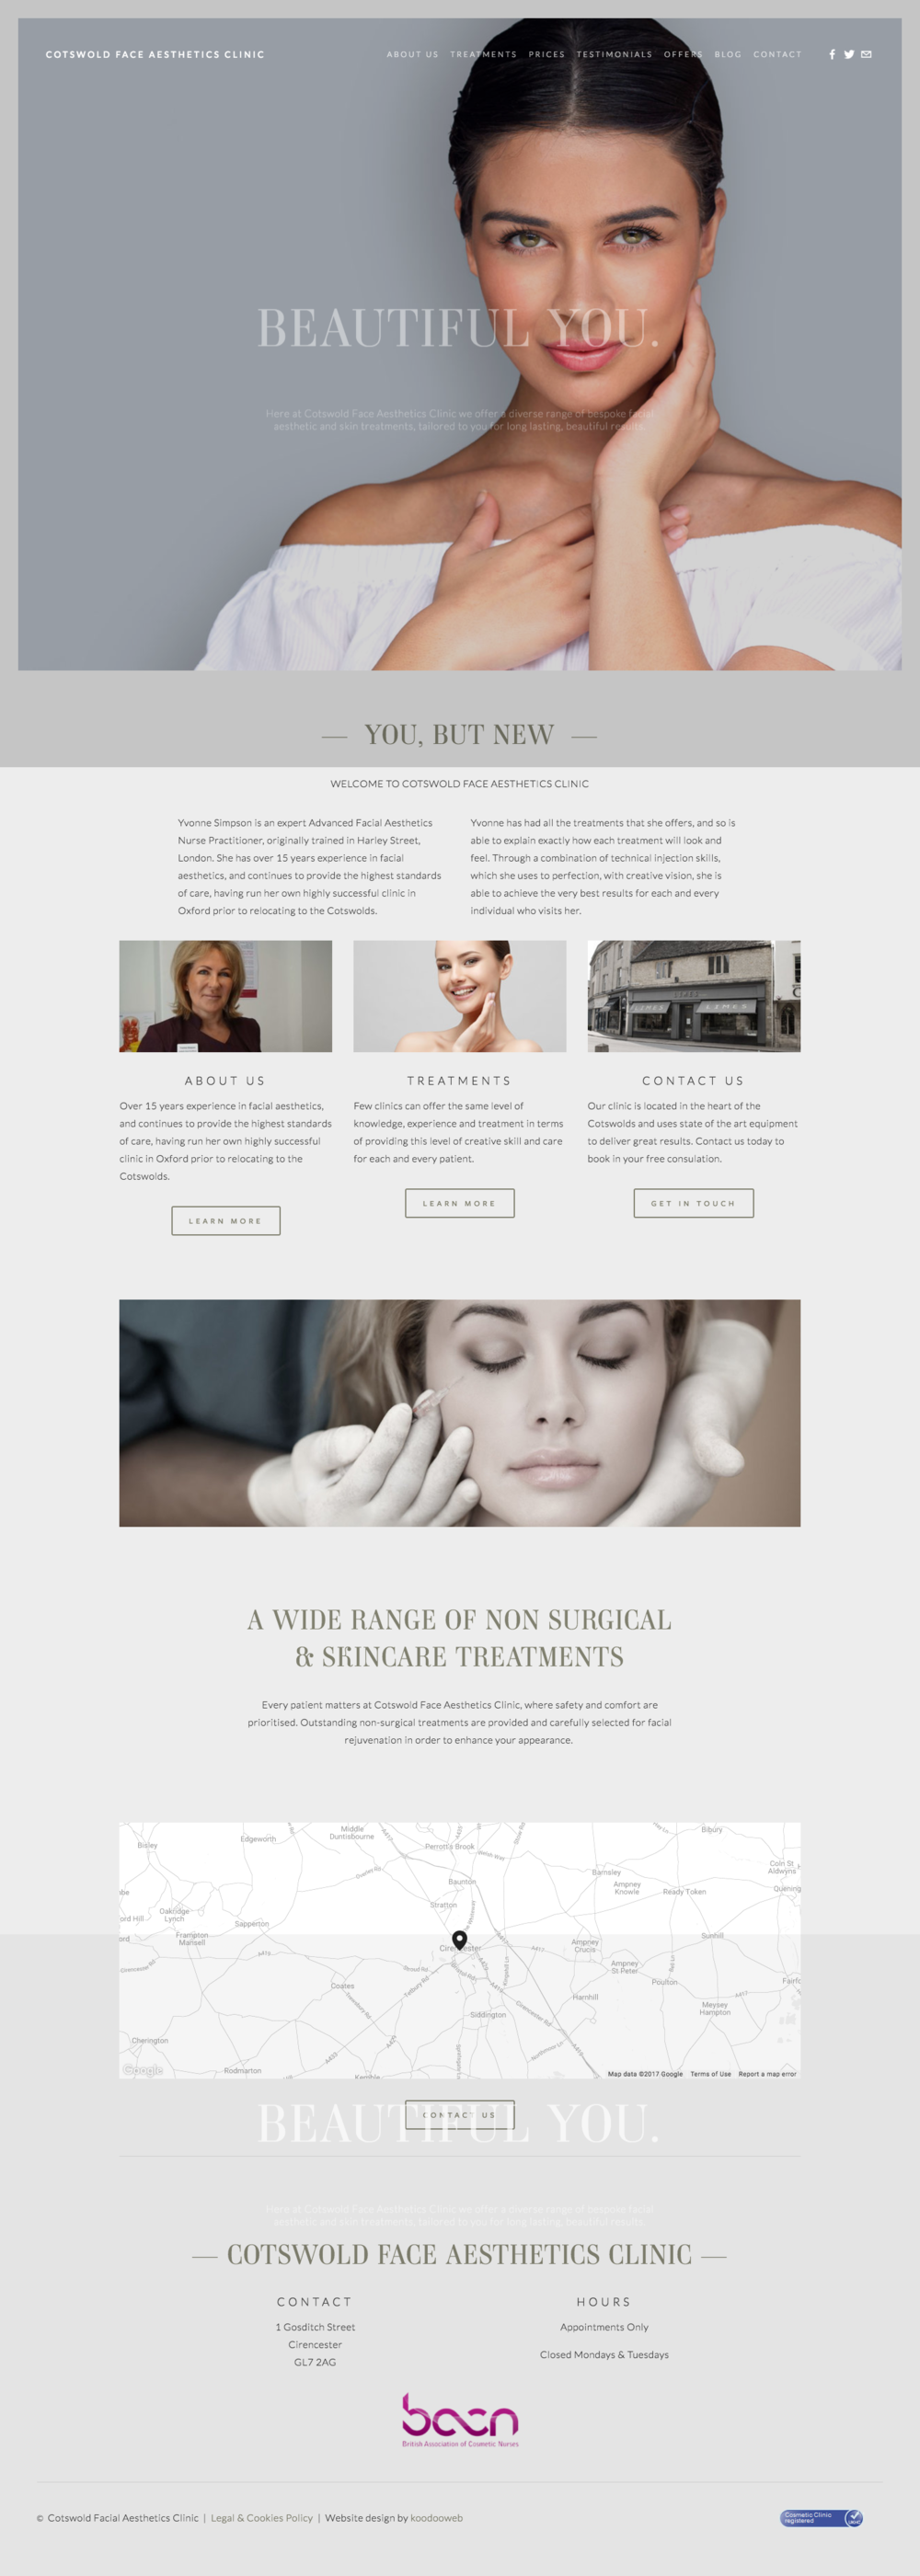 screencapture-cotswoldfaceaestheticsclinic-co-uk-1491553077060.png